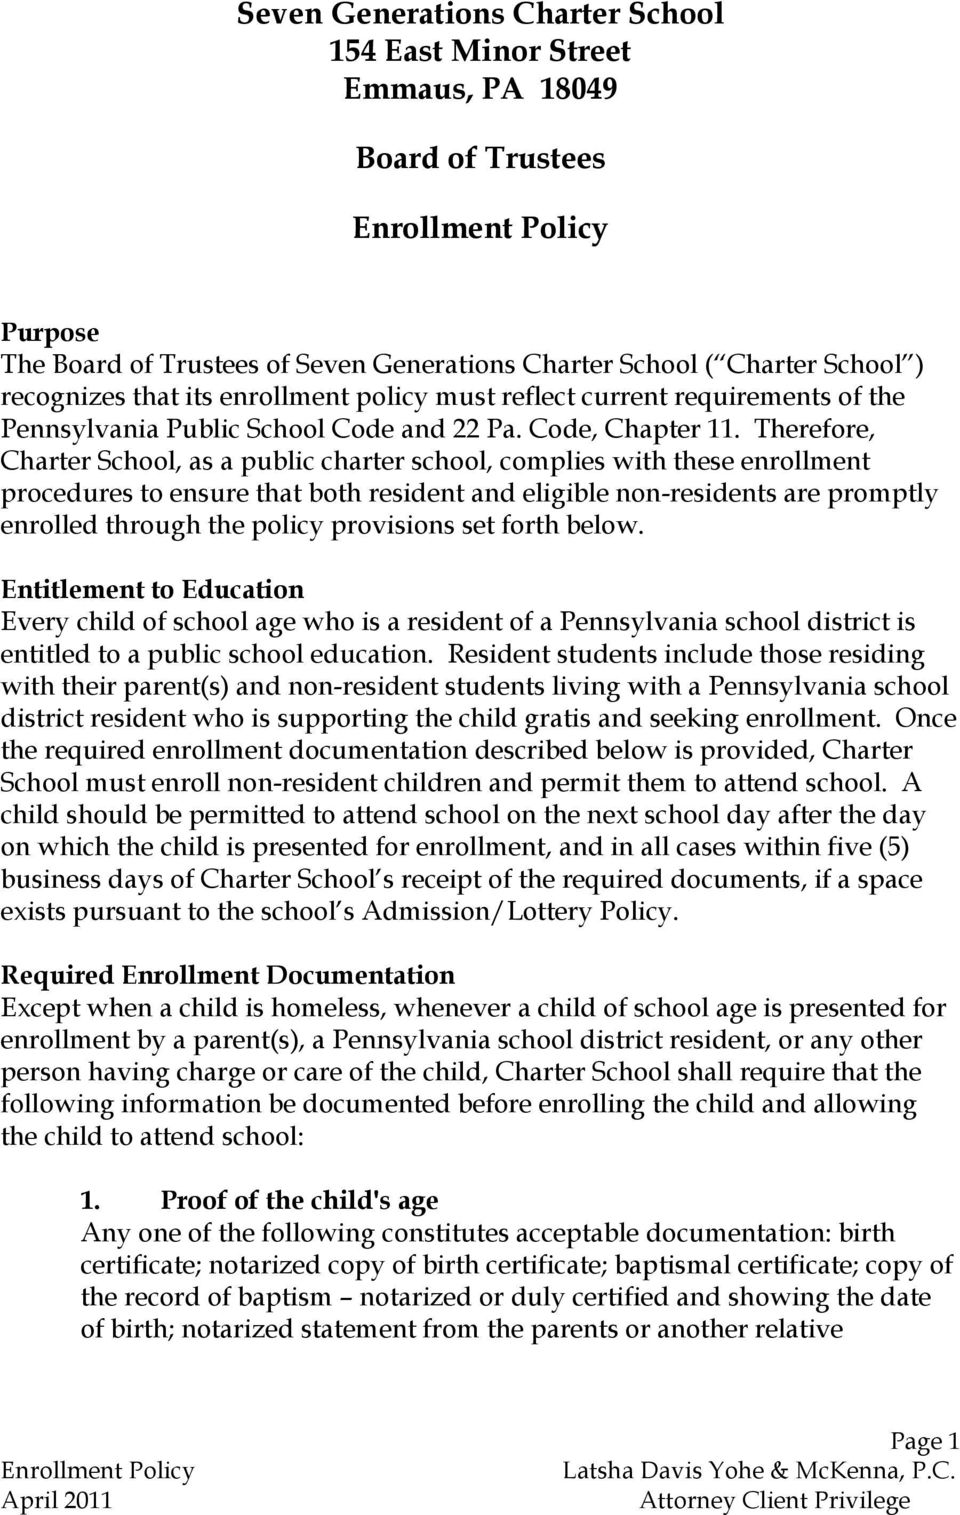 Therefore, Charter School, as a public charter school, complies with these enrollment procedures to ensure that both resident and eligible non-residents are promptly enrolled through the policy